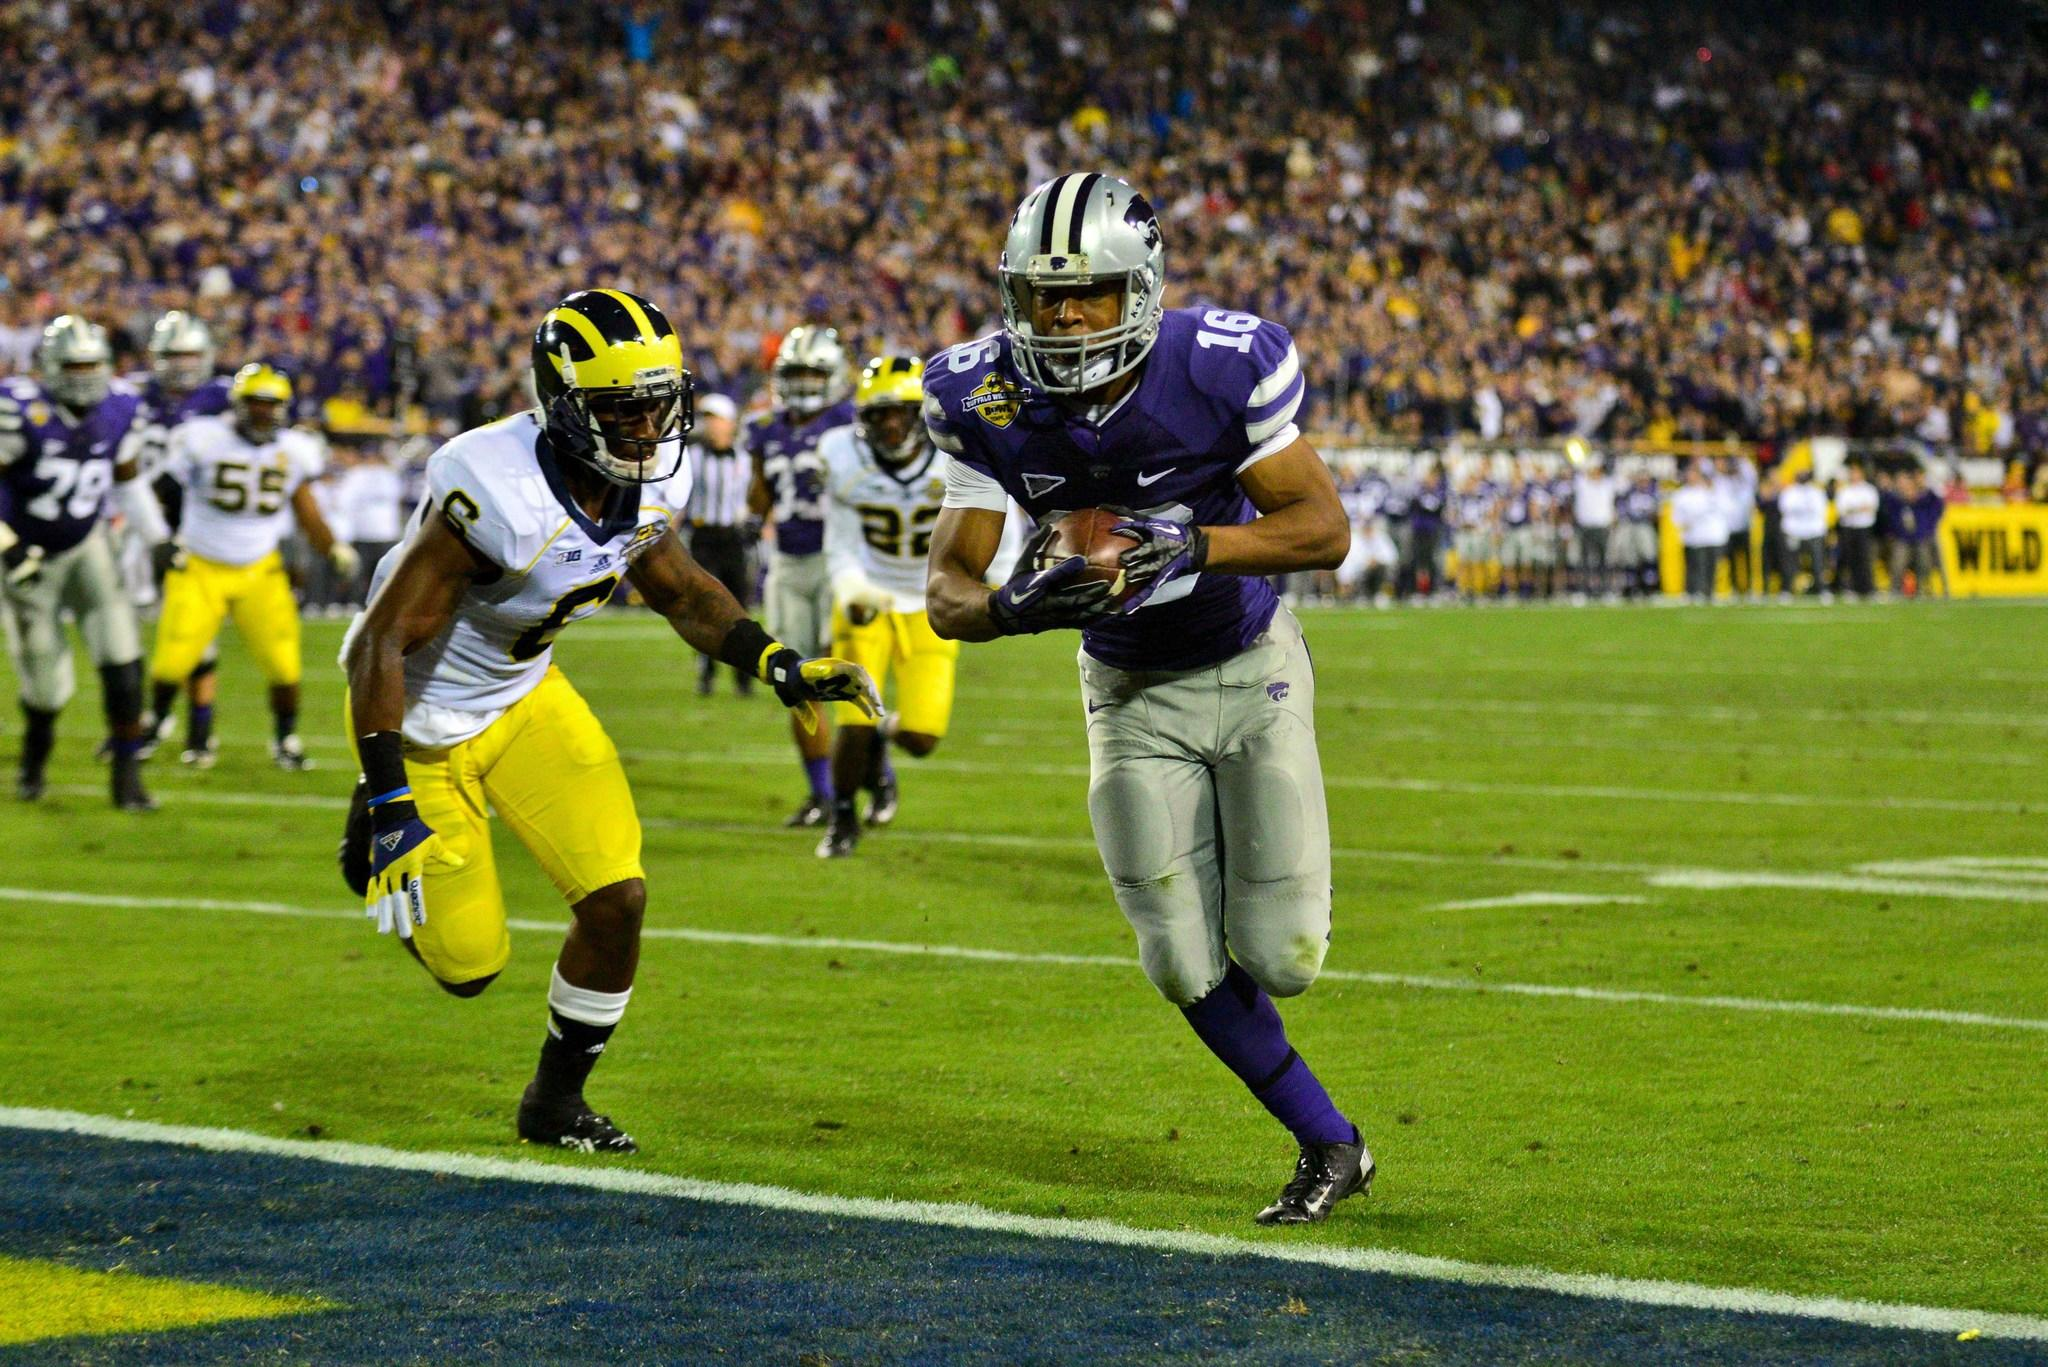 Kansas State wide receiver Tyler Lockett scores a 6-yard touchdown as Michigan's Raymon Taylor defends during the first half.